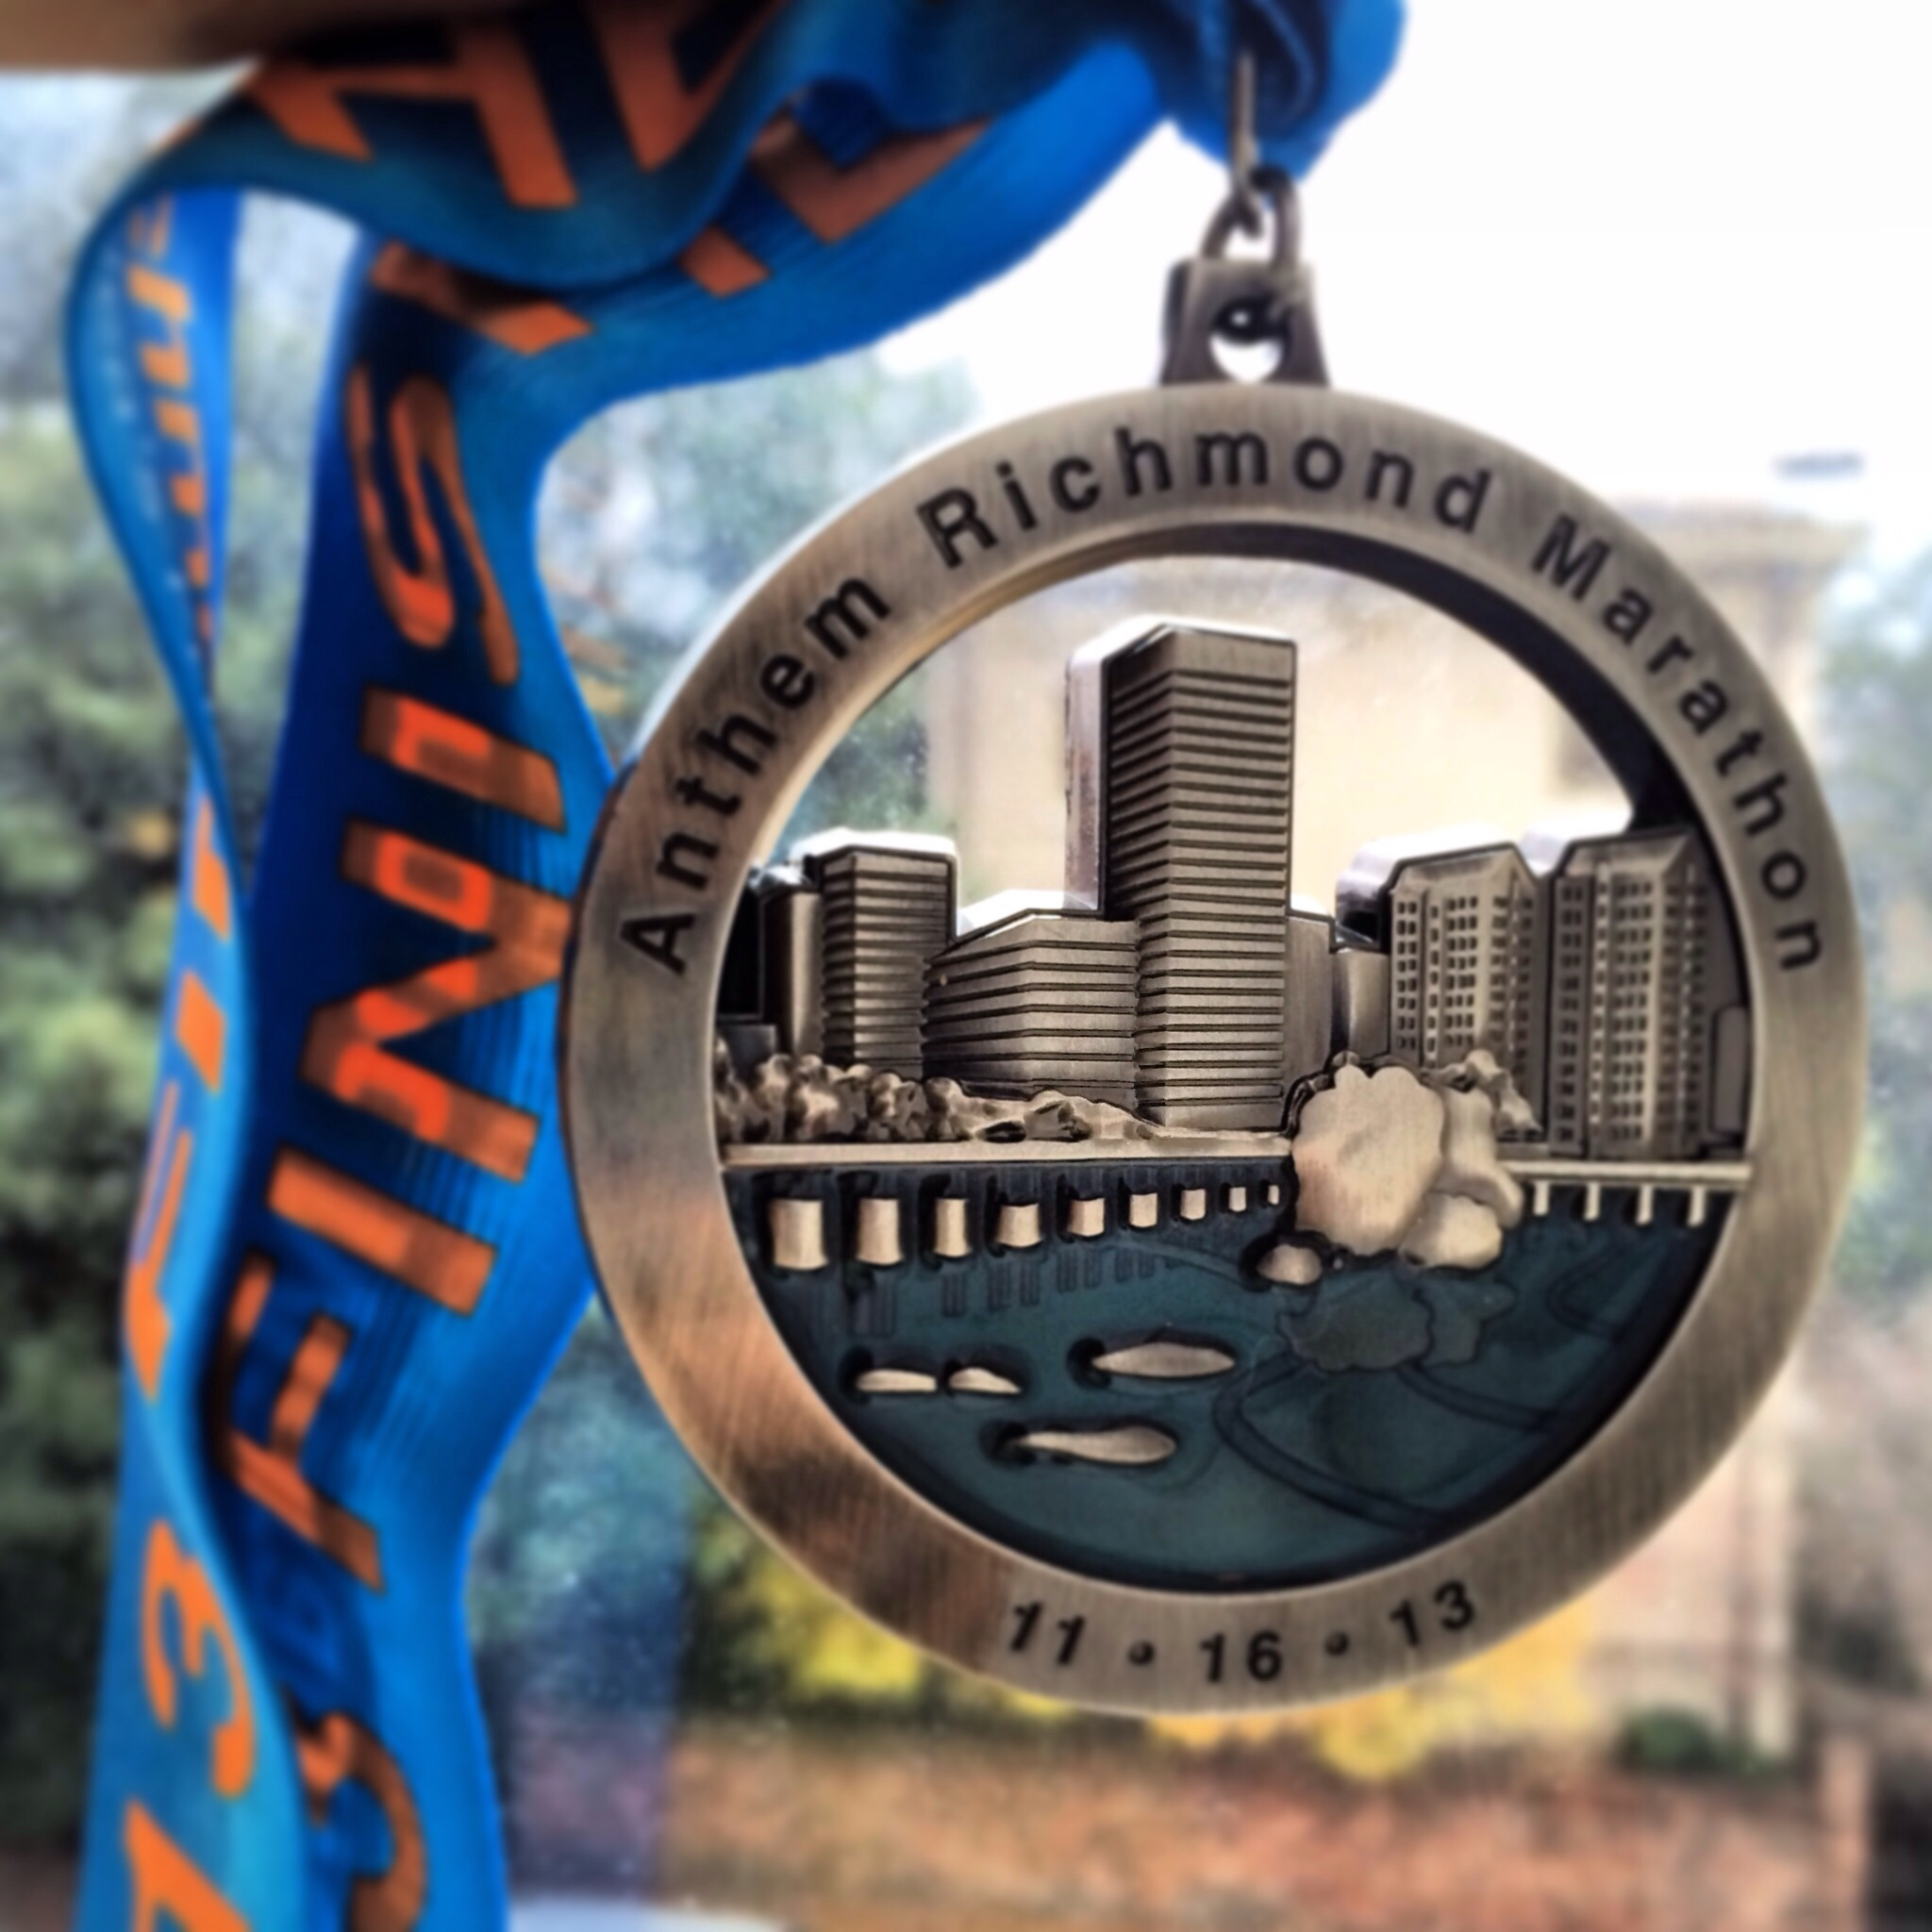 Richmond Marathon Medal